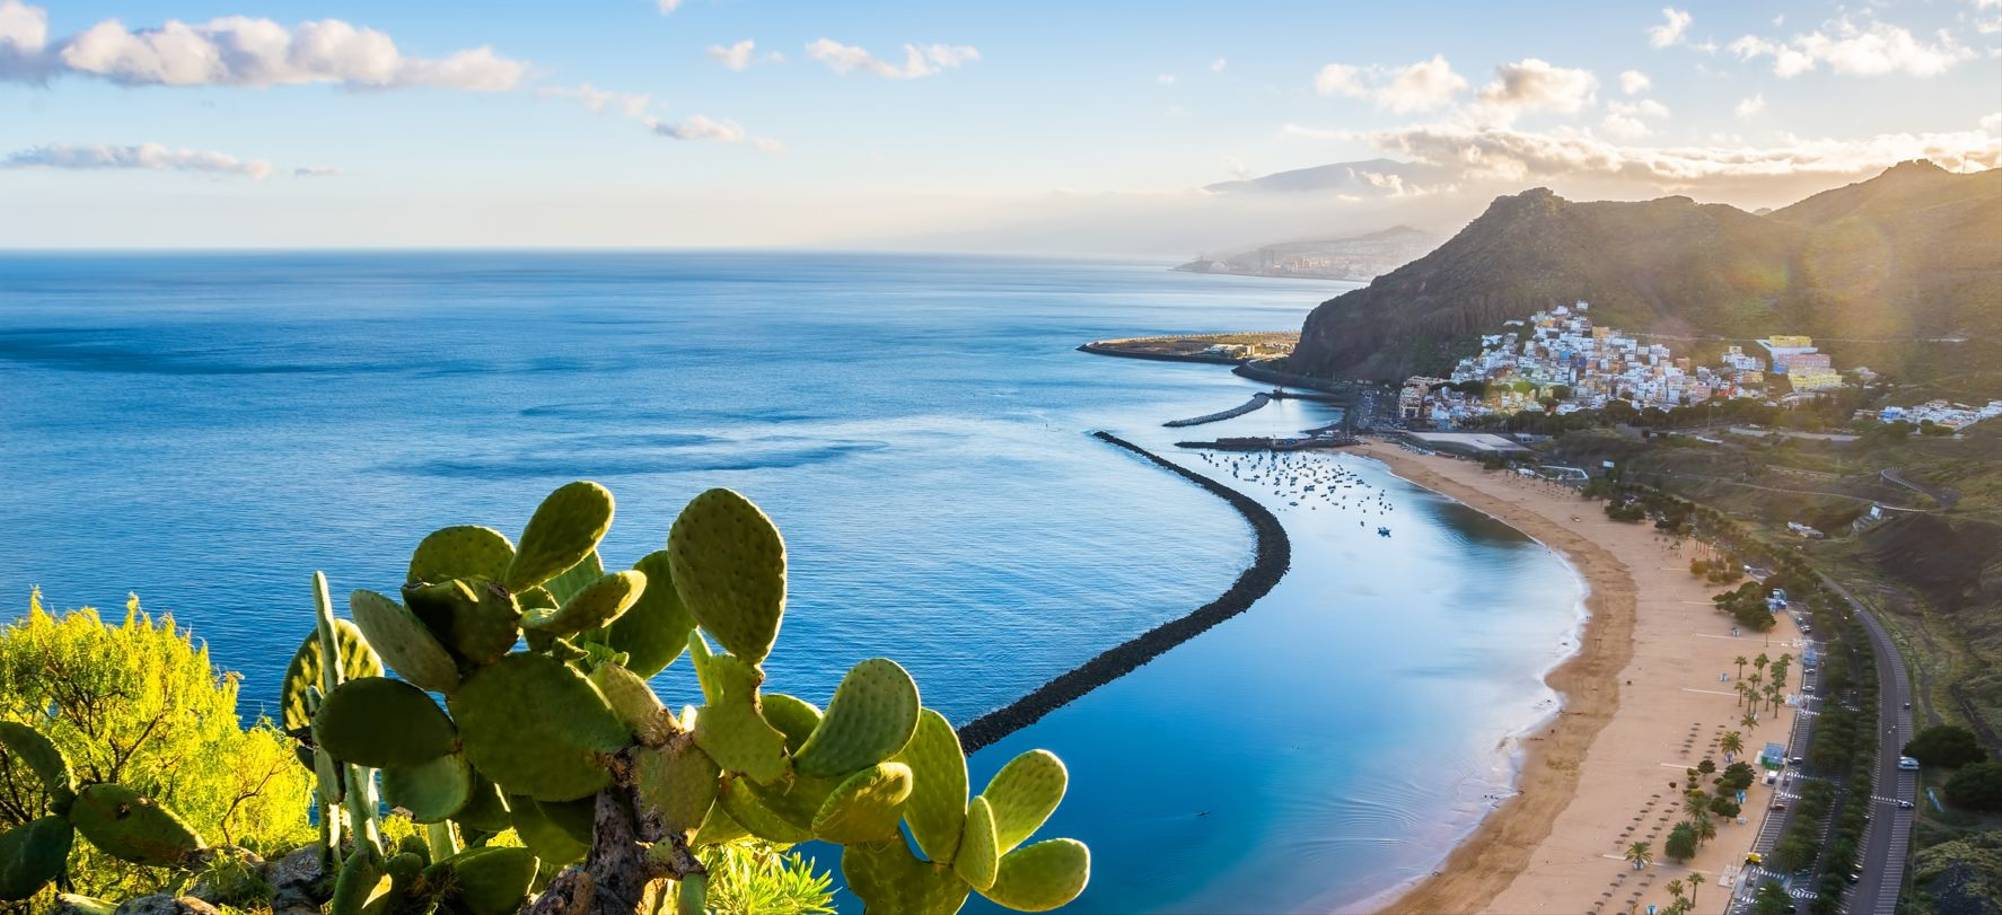 8 Day - Lanzarote (Canary Islands) - Itinerary Desktop.jpg